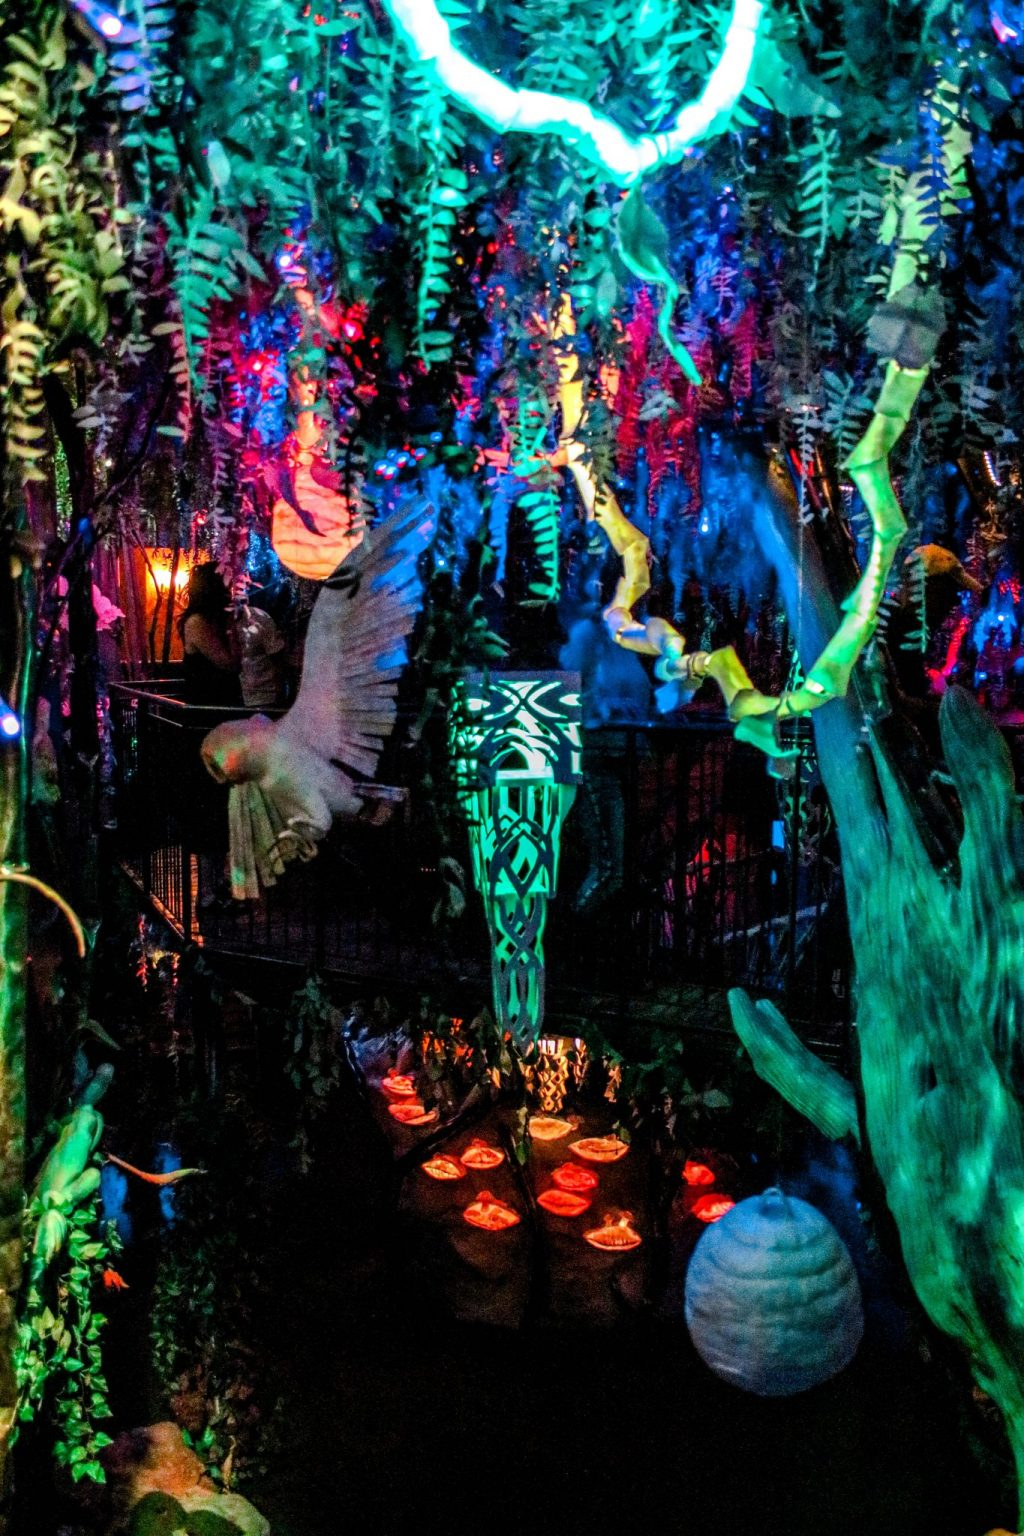 Meow Wolf - an art installation experience in Santa Fe, New Mexico.